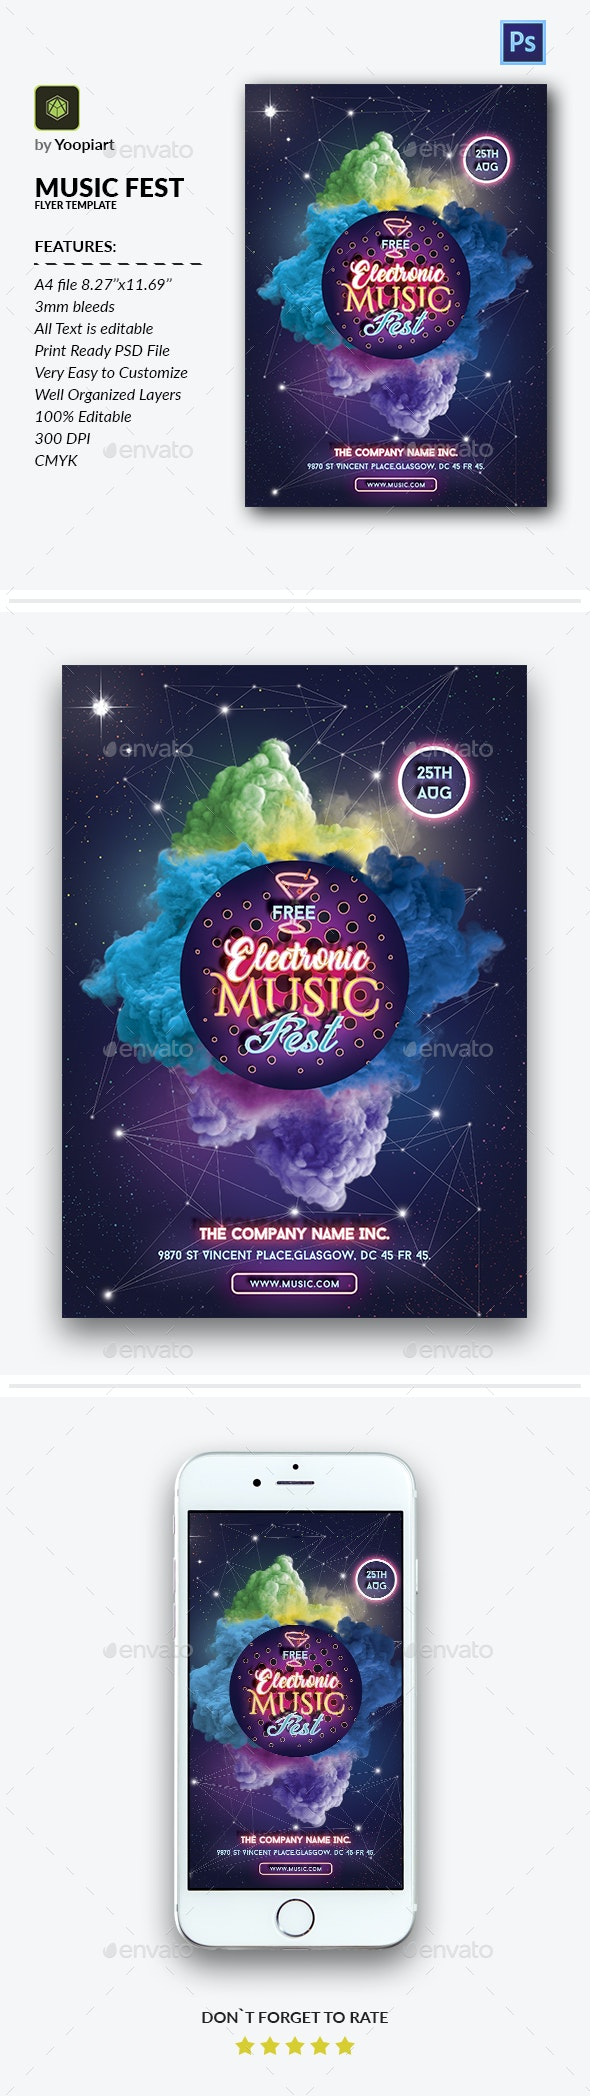 Music Fest Flyer Template - Events Flyers